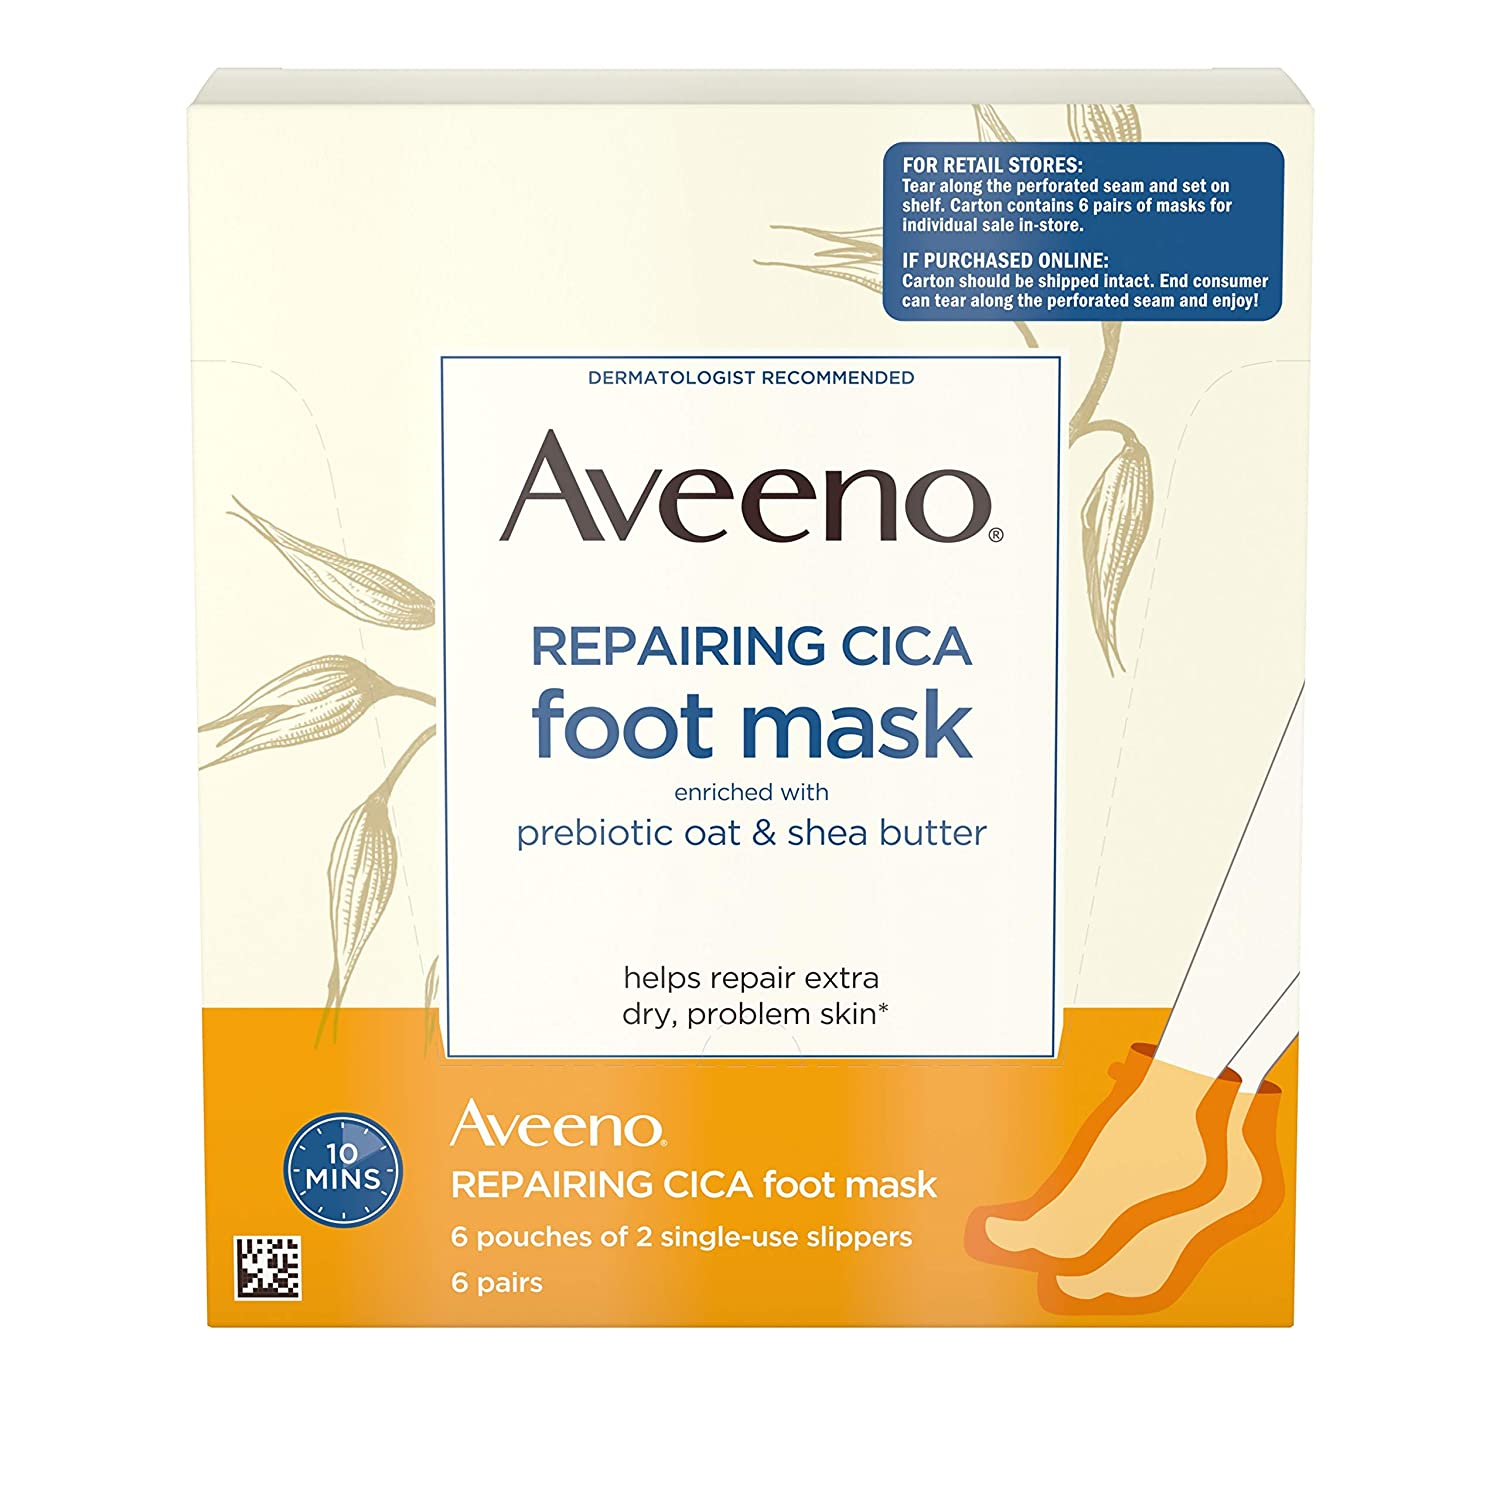 Amazon Aveeno Repairing Cica Foot Mask With Prebiotic Oat And